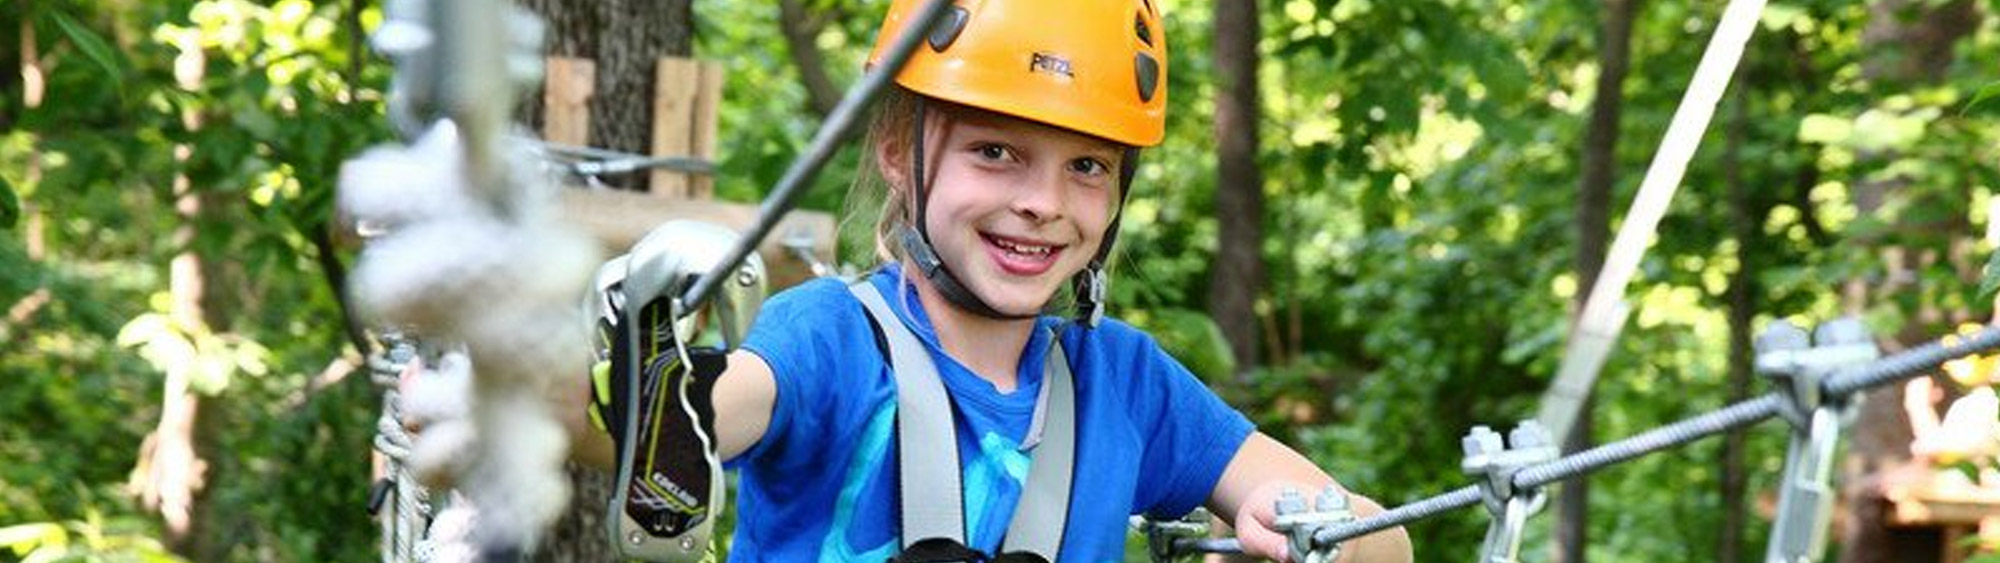 young girl on aerial adventure park in harpers ferry wv